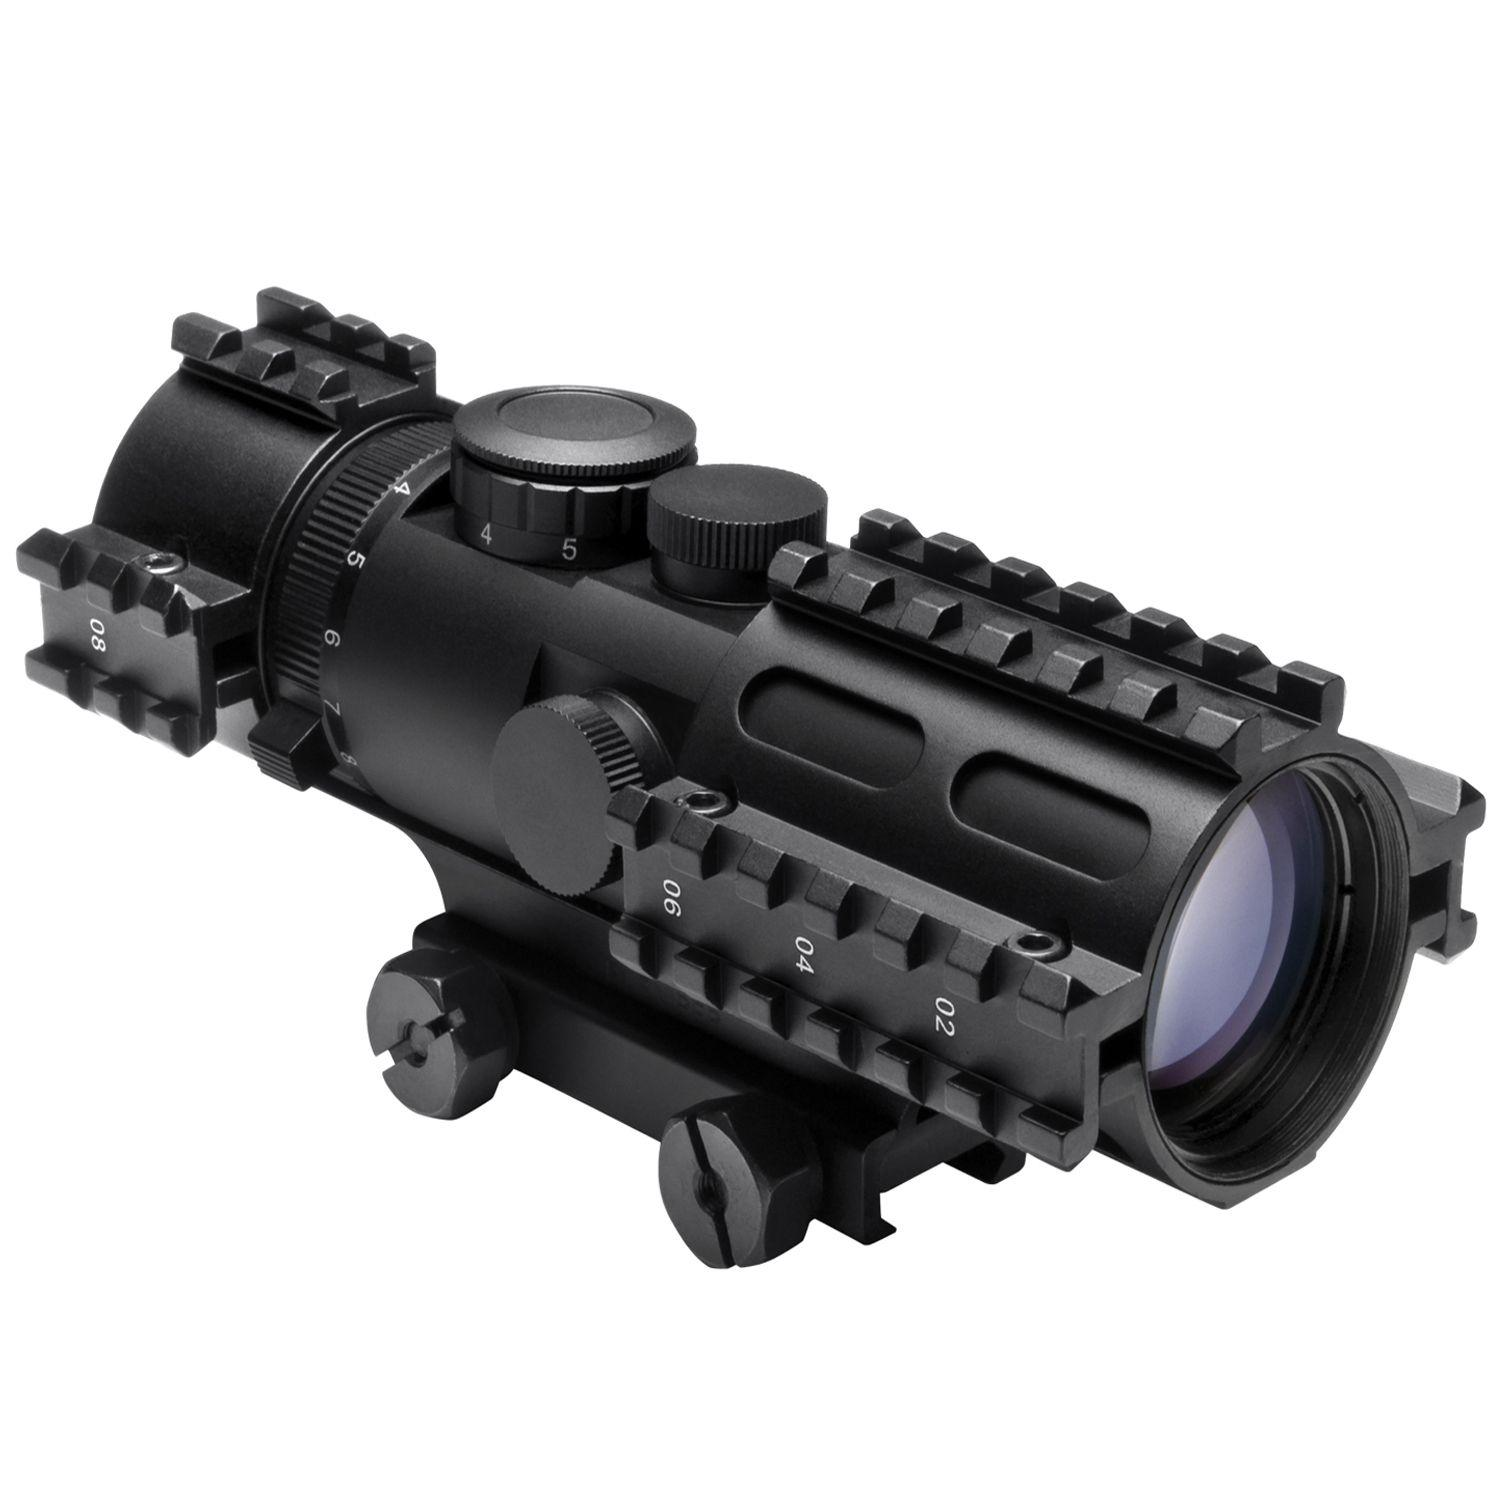 Ncstar Tri-Rail Series 3-9X42 P4 Sniper Scope